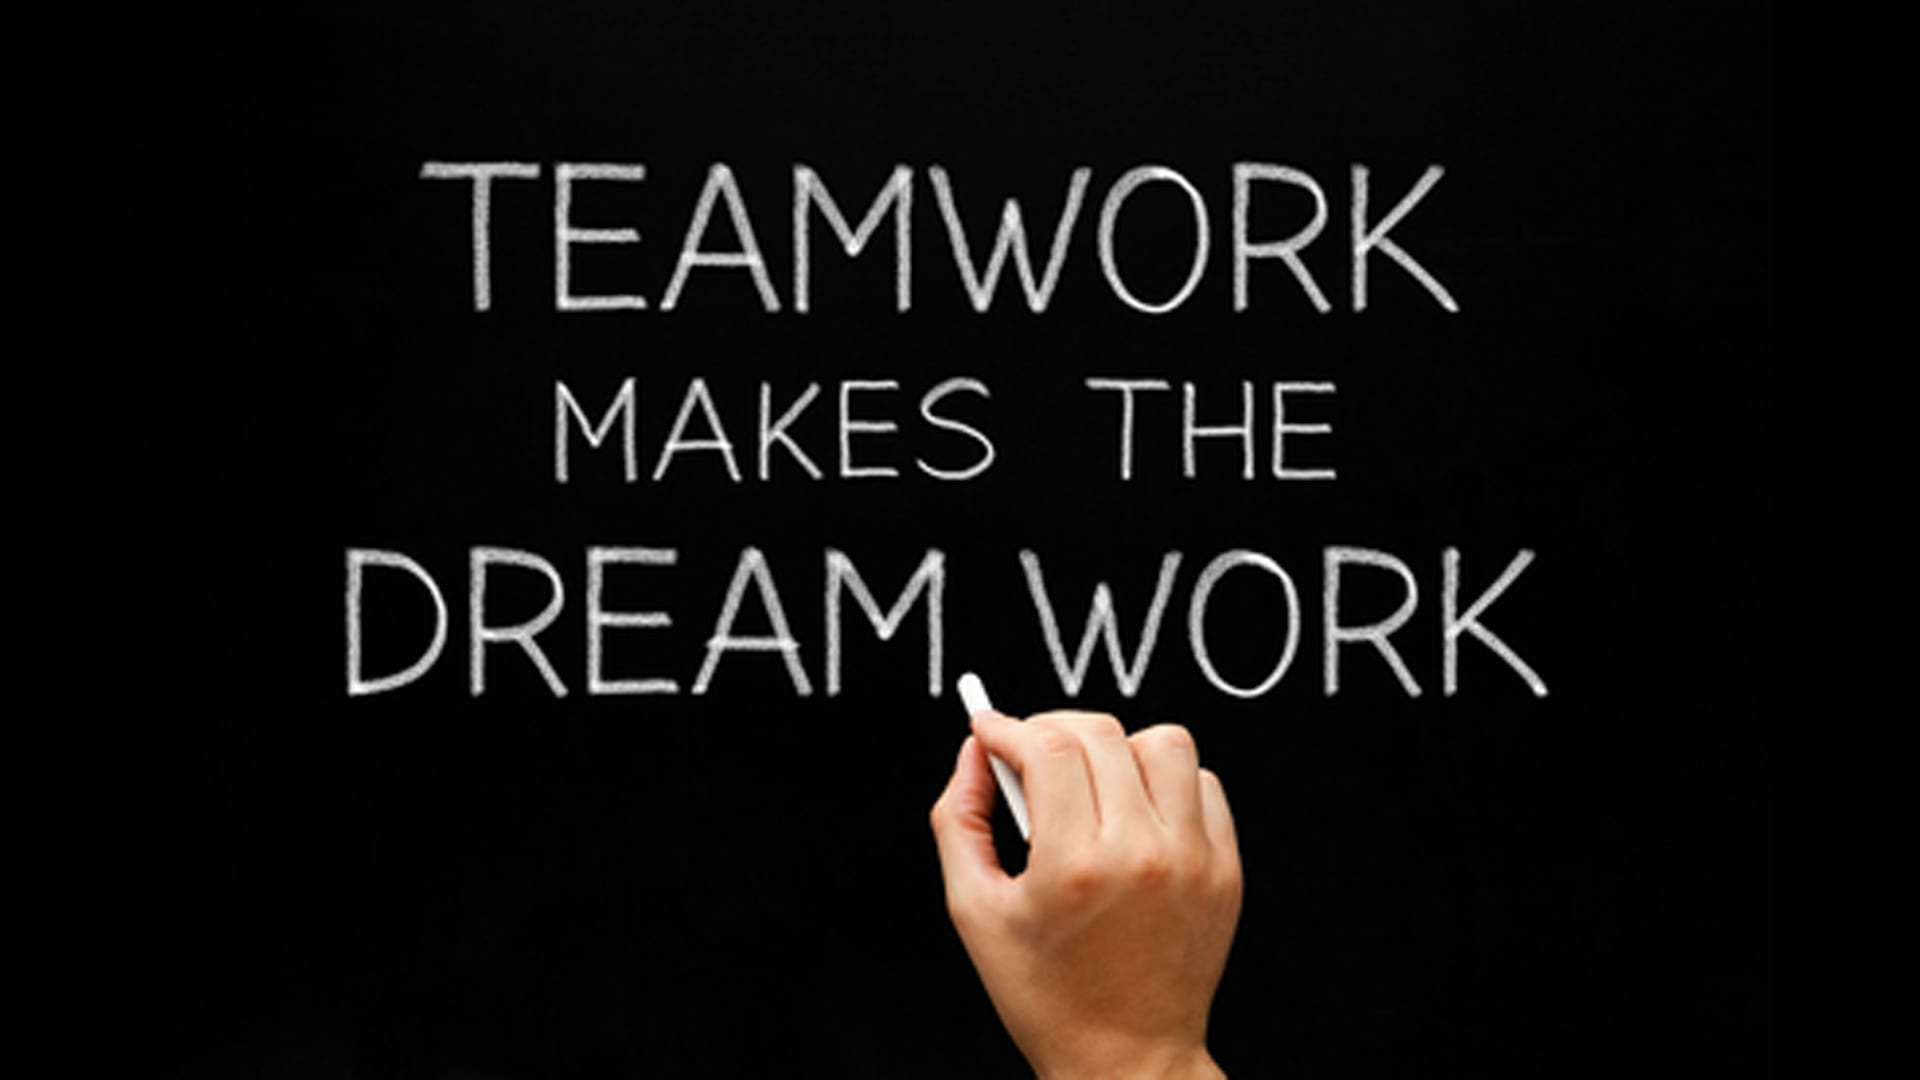 How Team Work Makes Your Dream Work